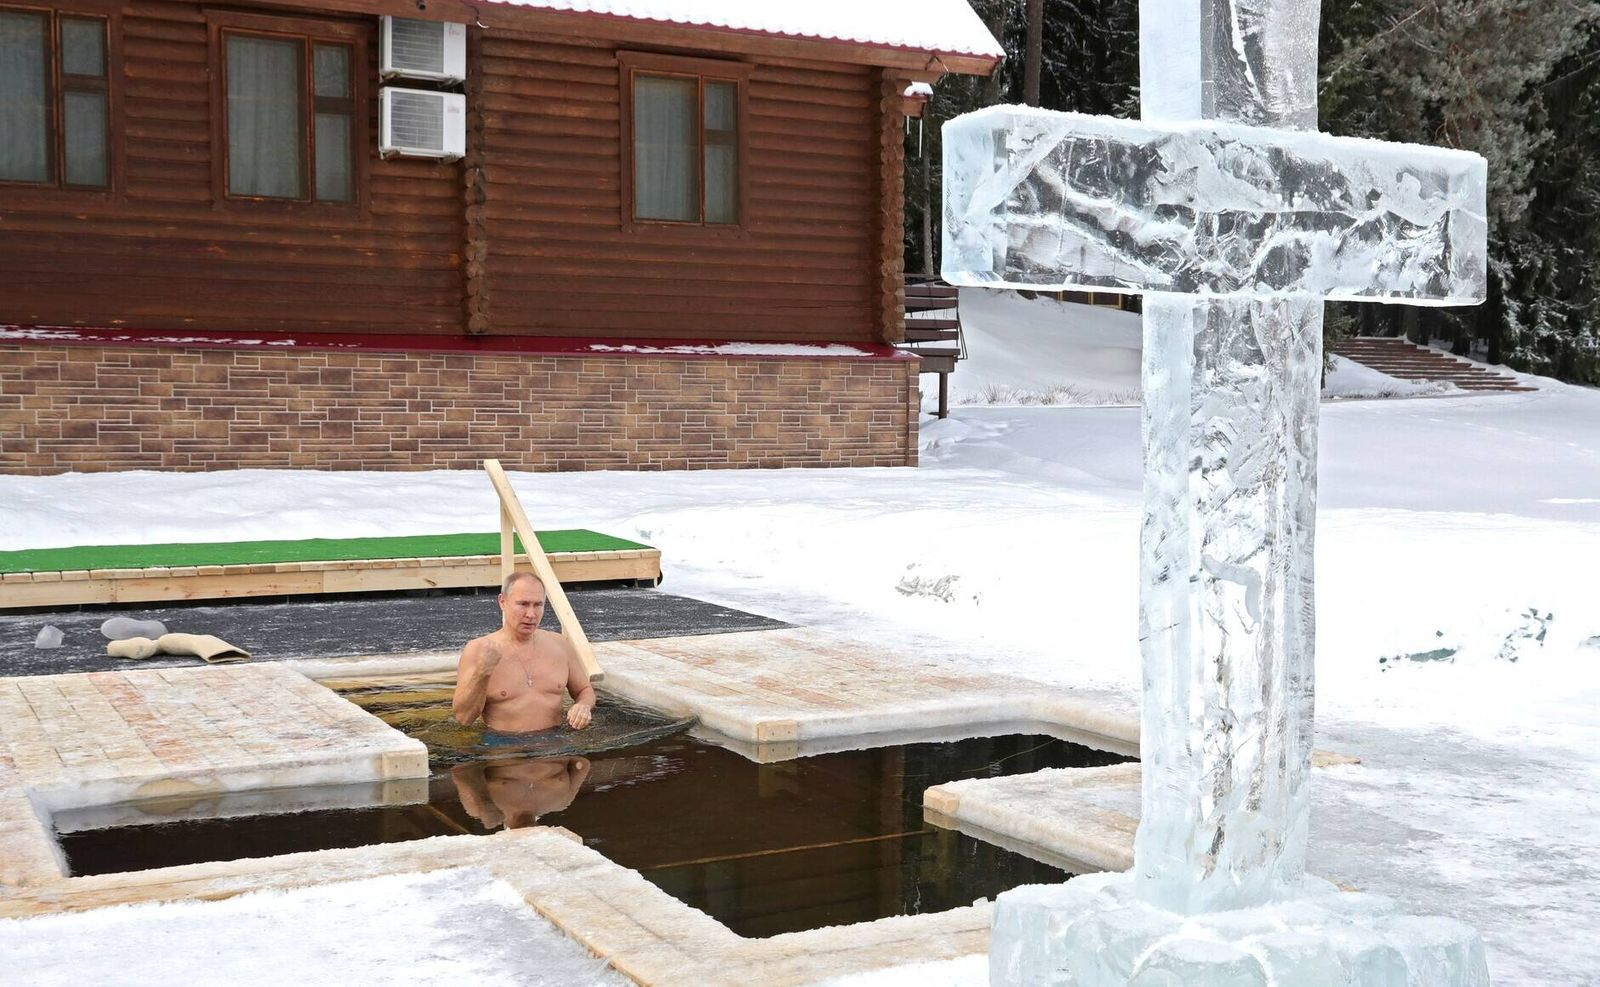 January 19, 2021. - Russia, Moscow region. - Russian President Vladimir Putin takes a dip in an ice hole on the feastday